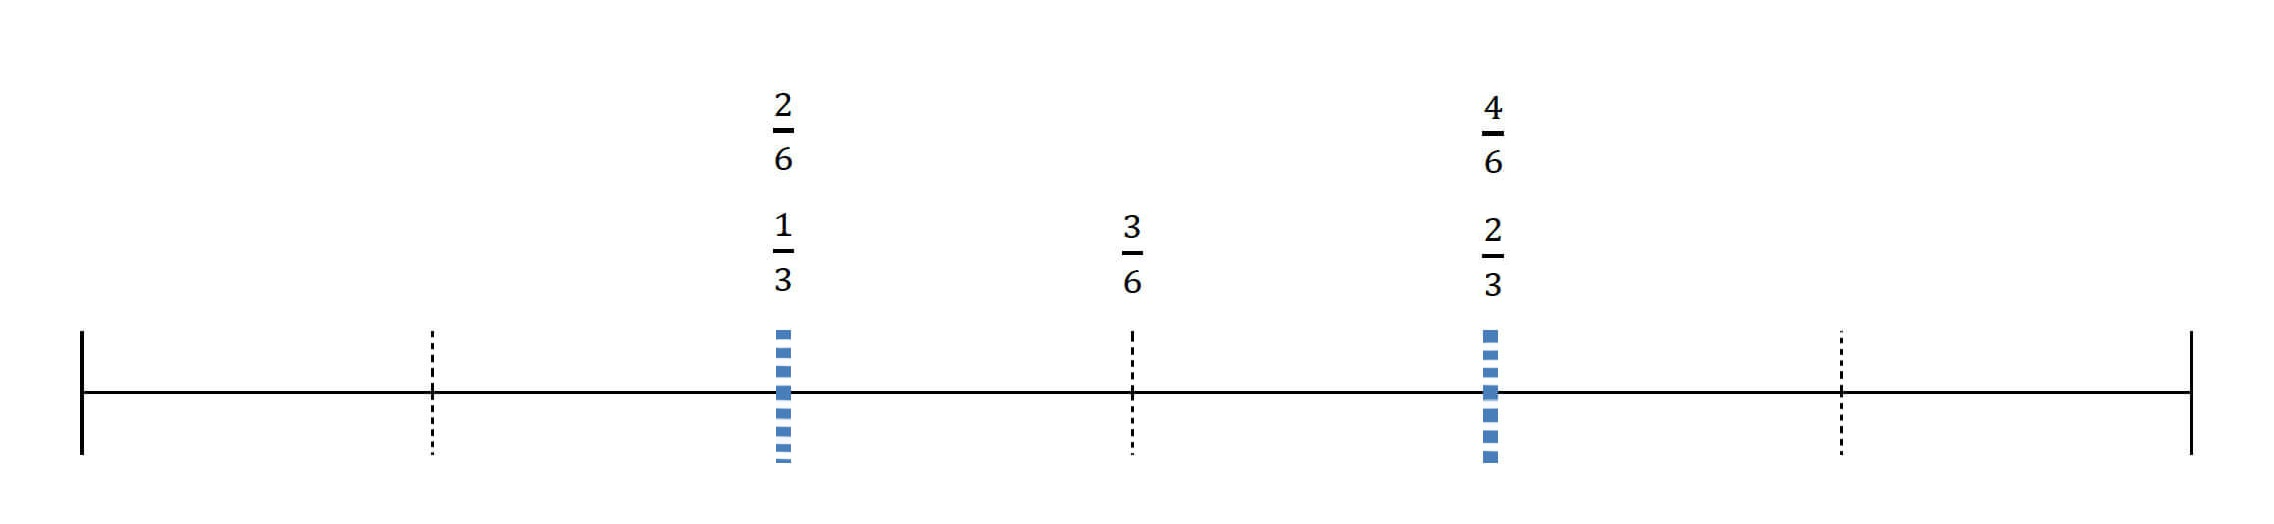 2 Fractions between 1/3 and 2/3